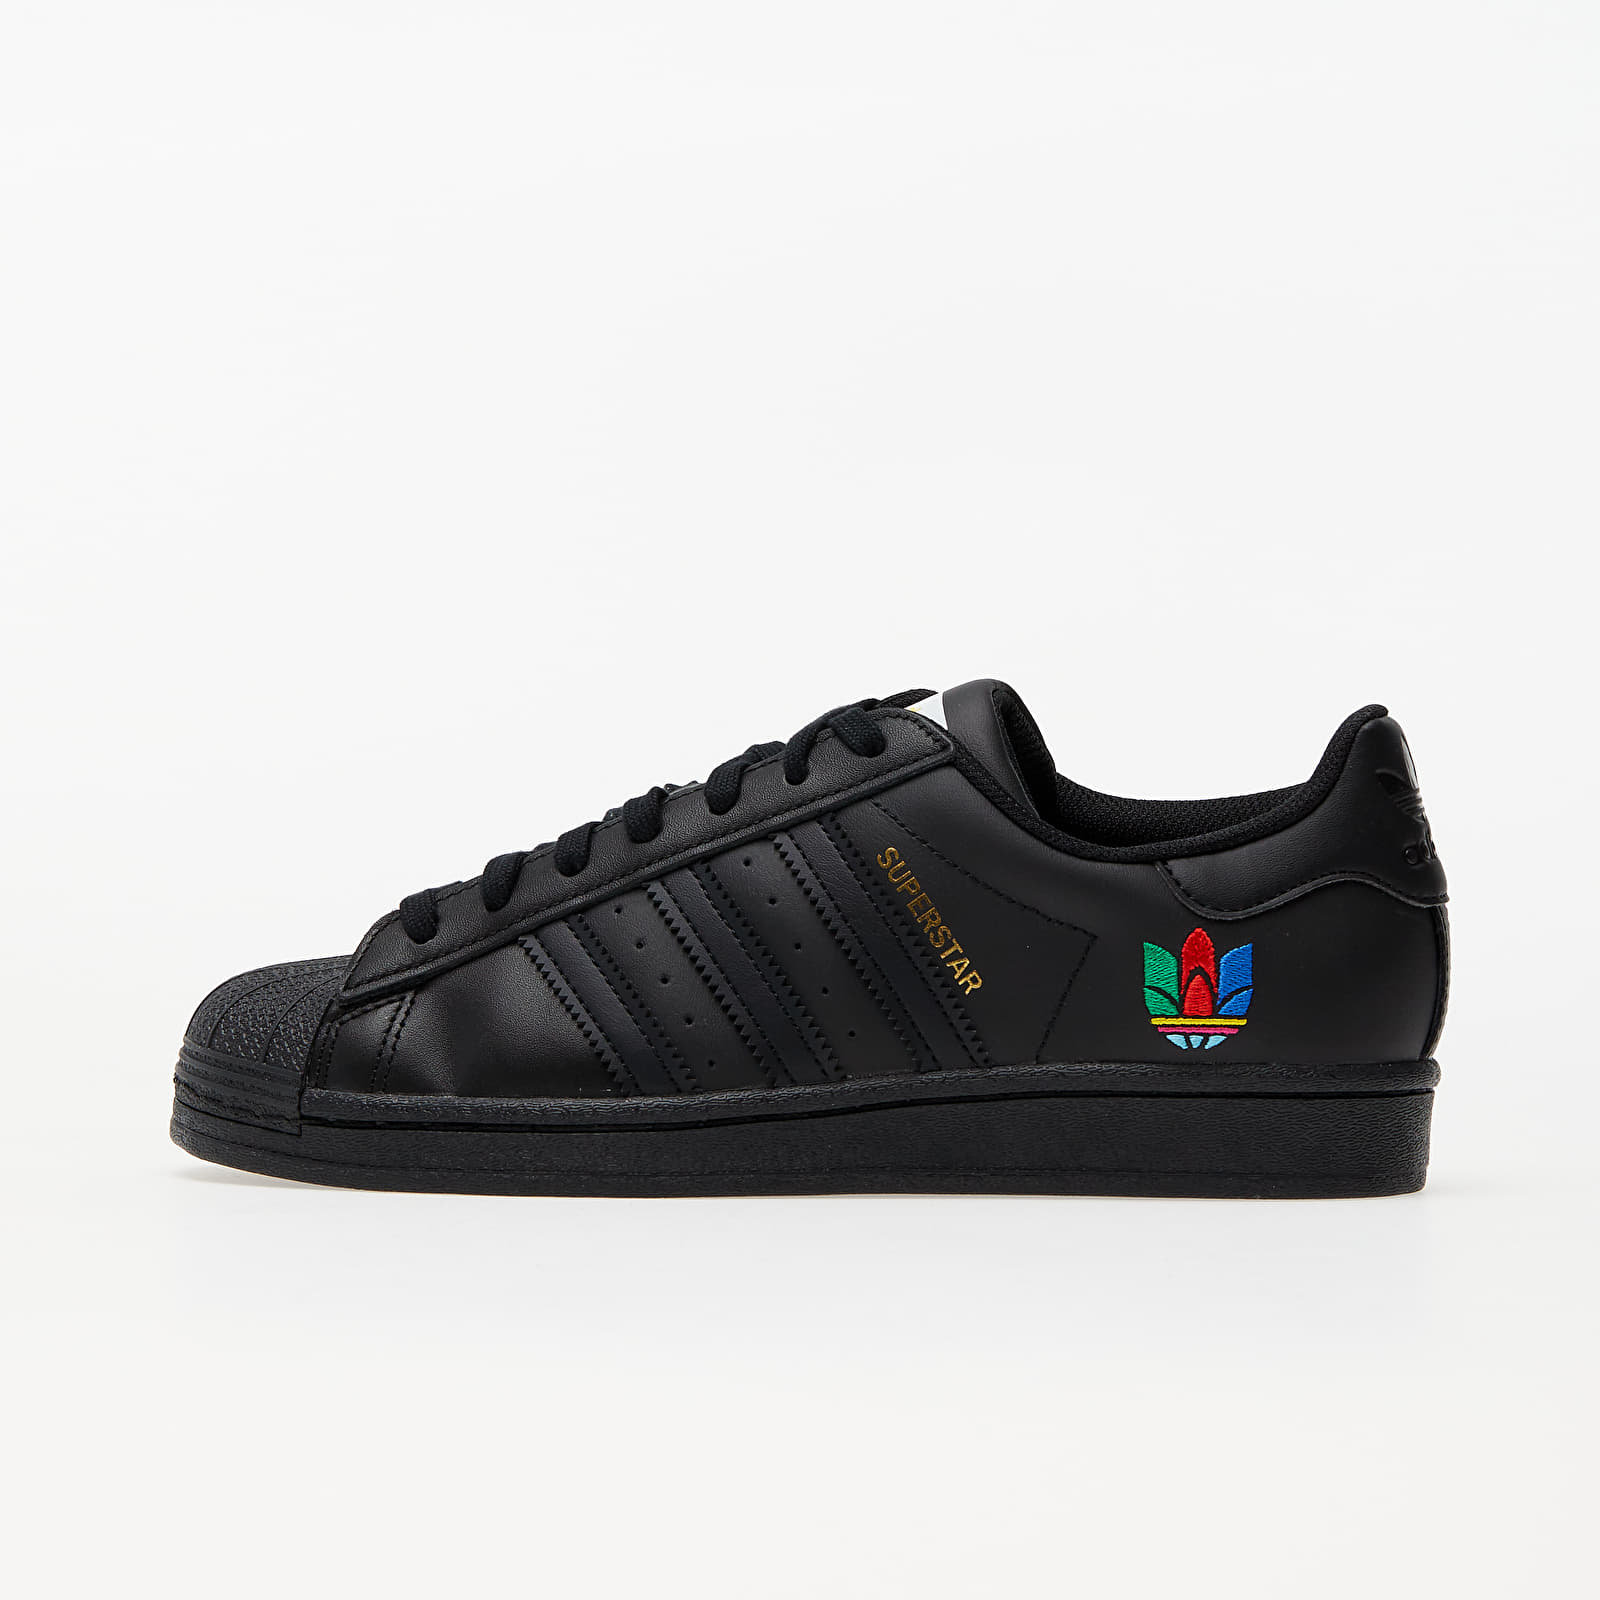 Women's shoes adidas Superstar W Core Black/ Core Black/ Real Magenta